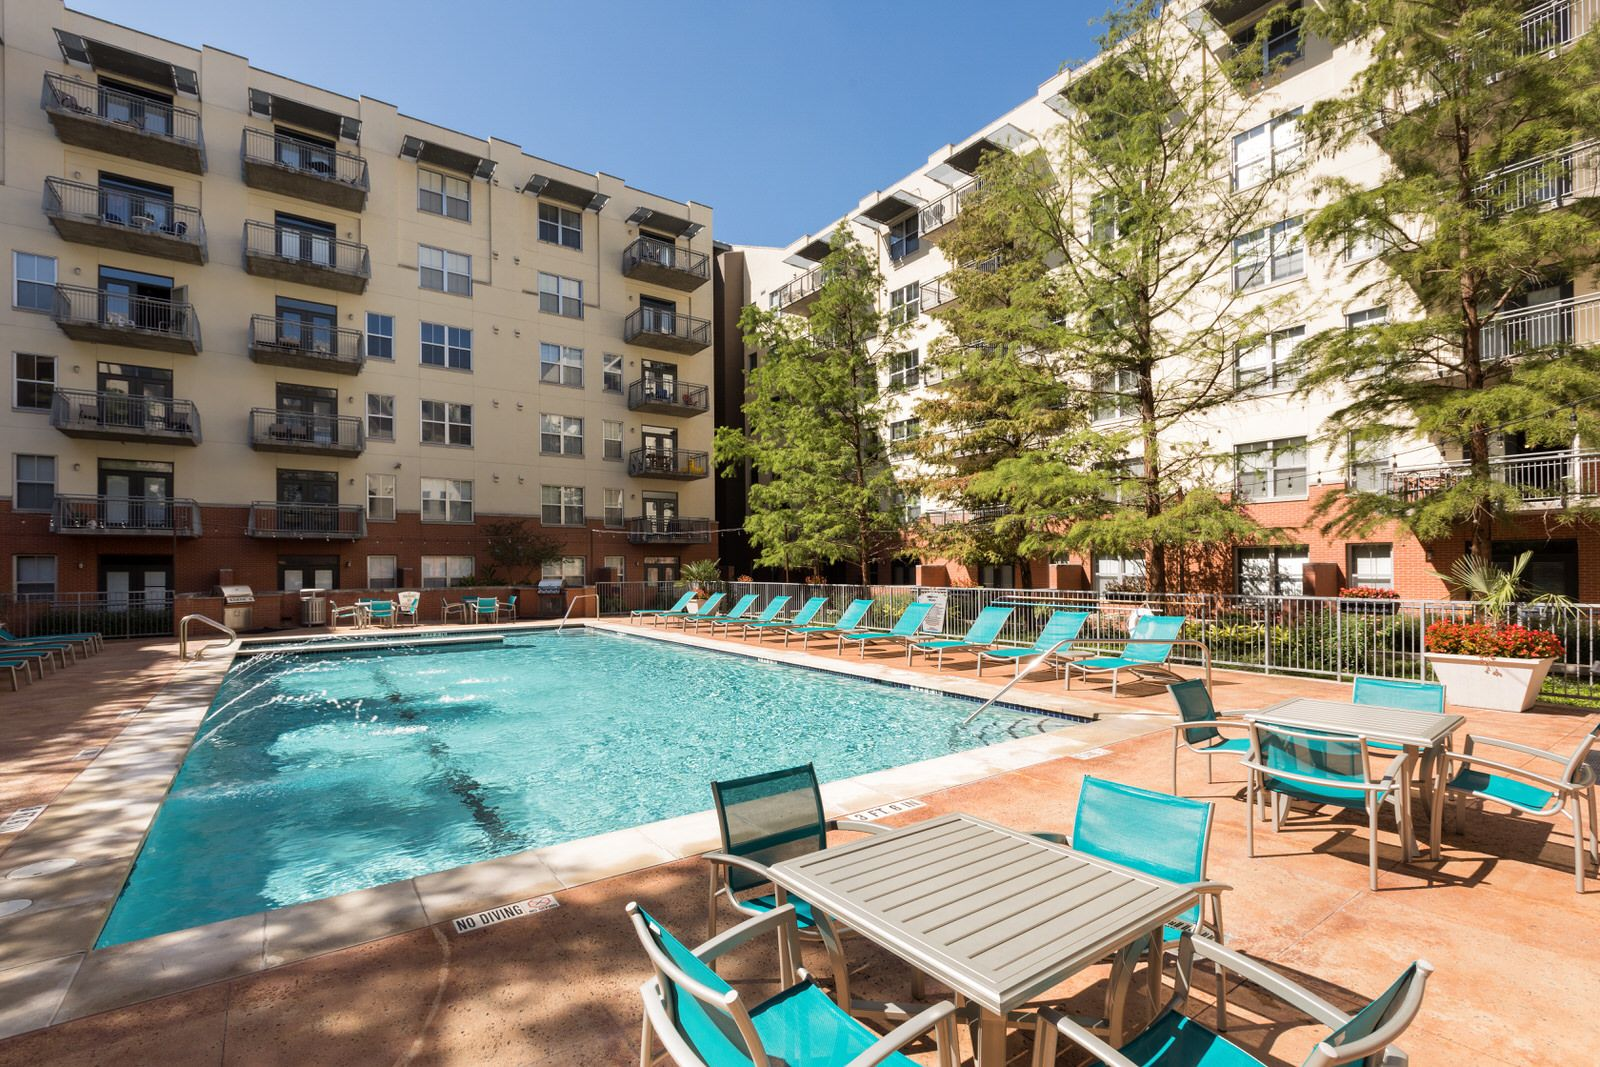 The pool at our downtown Austin apartments has enough